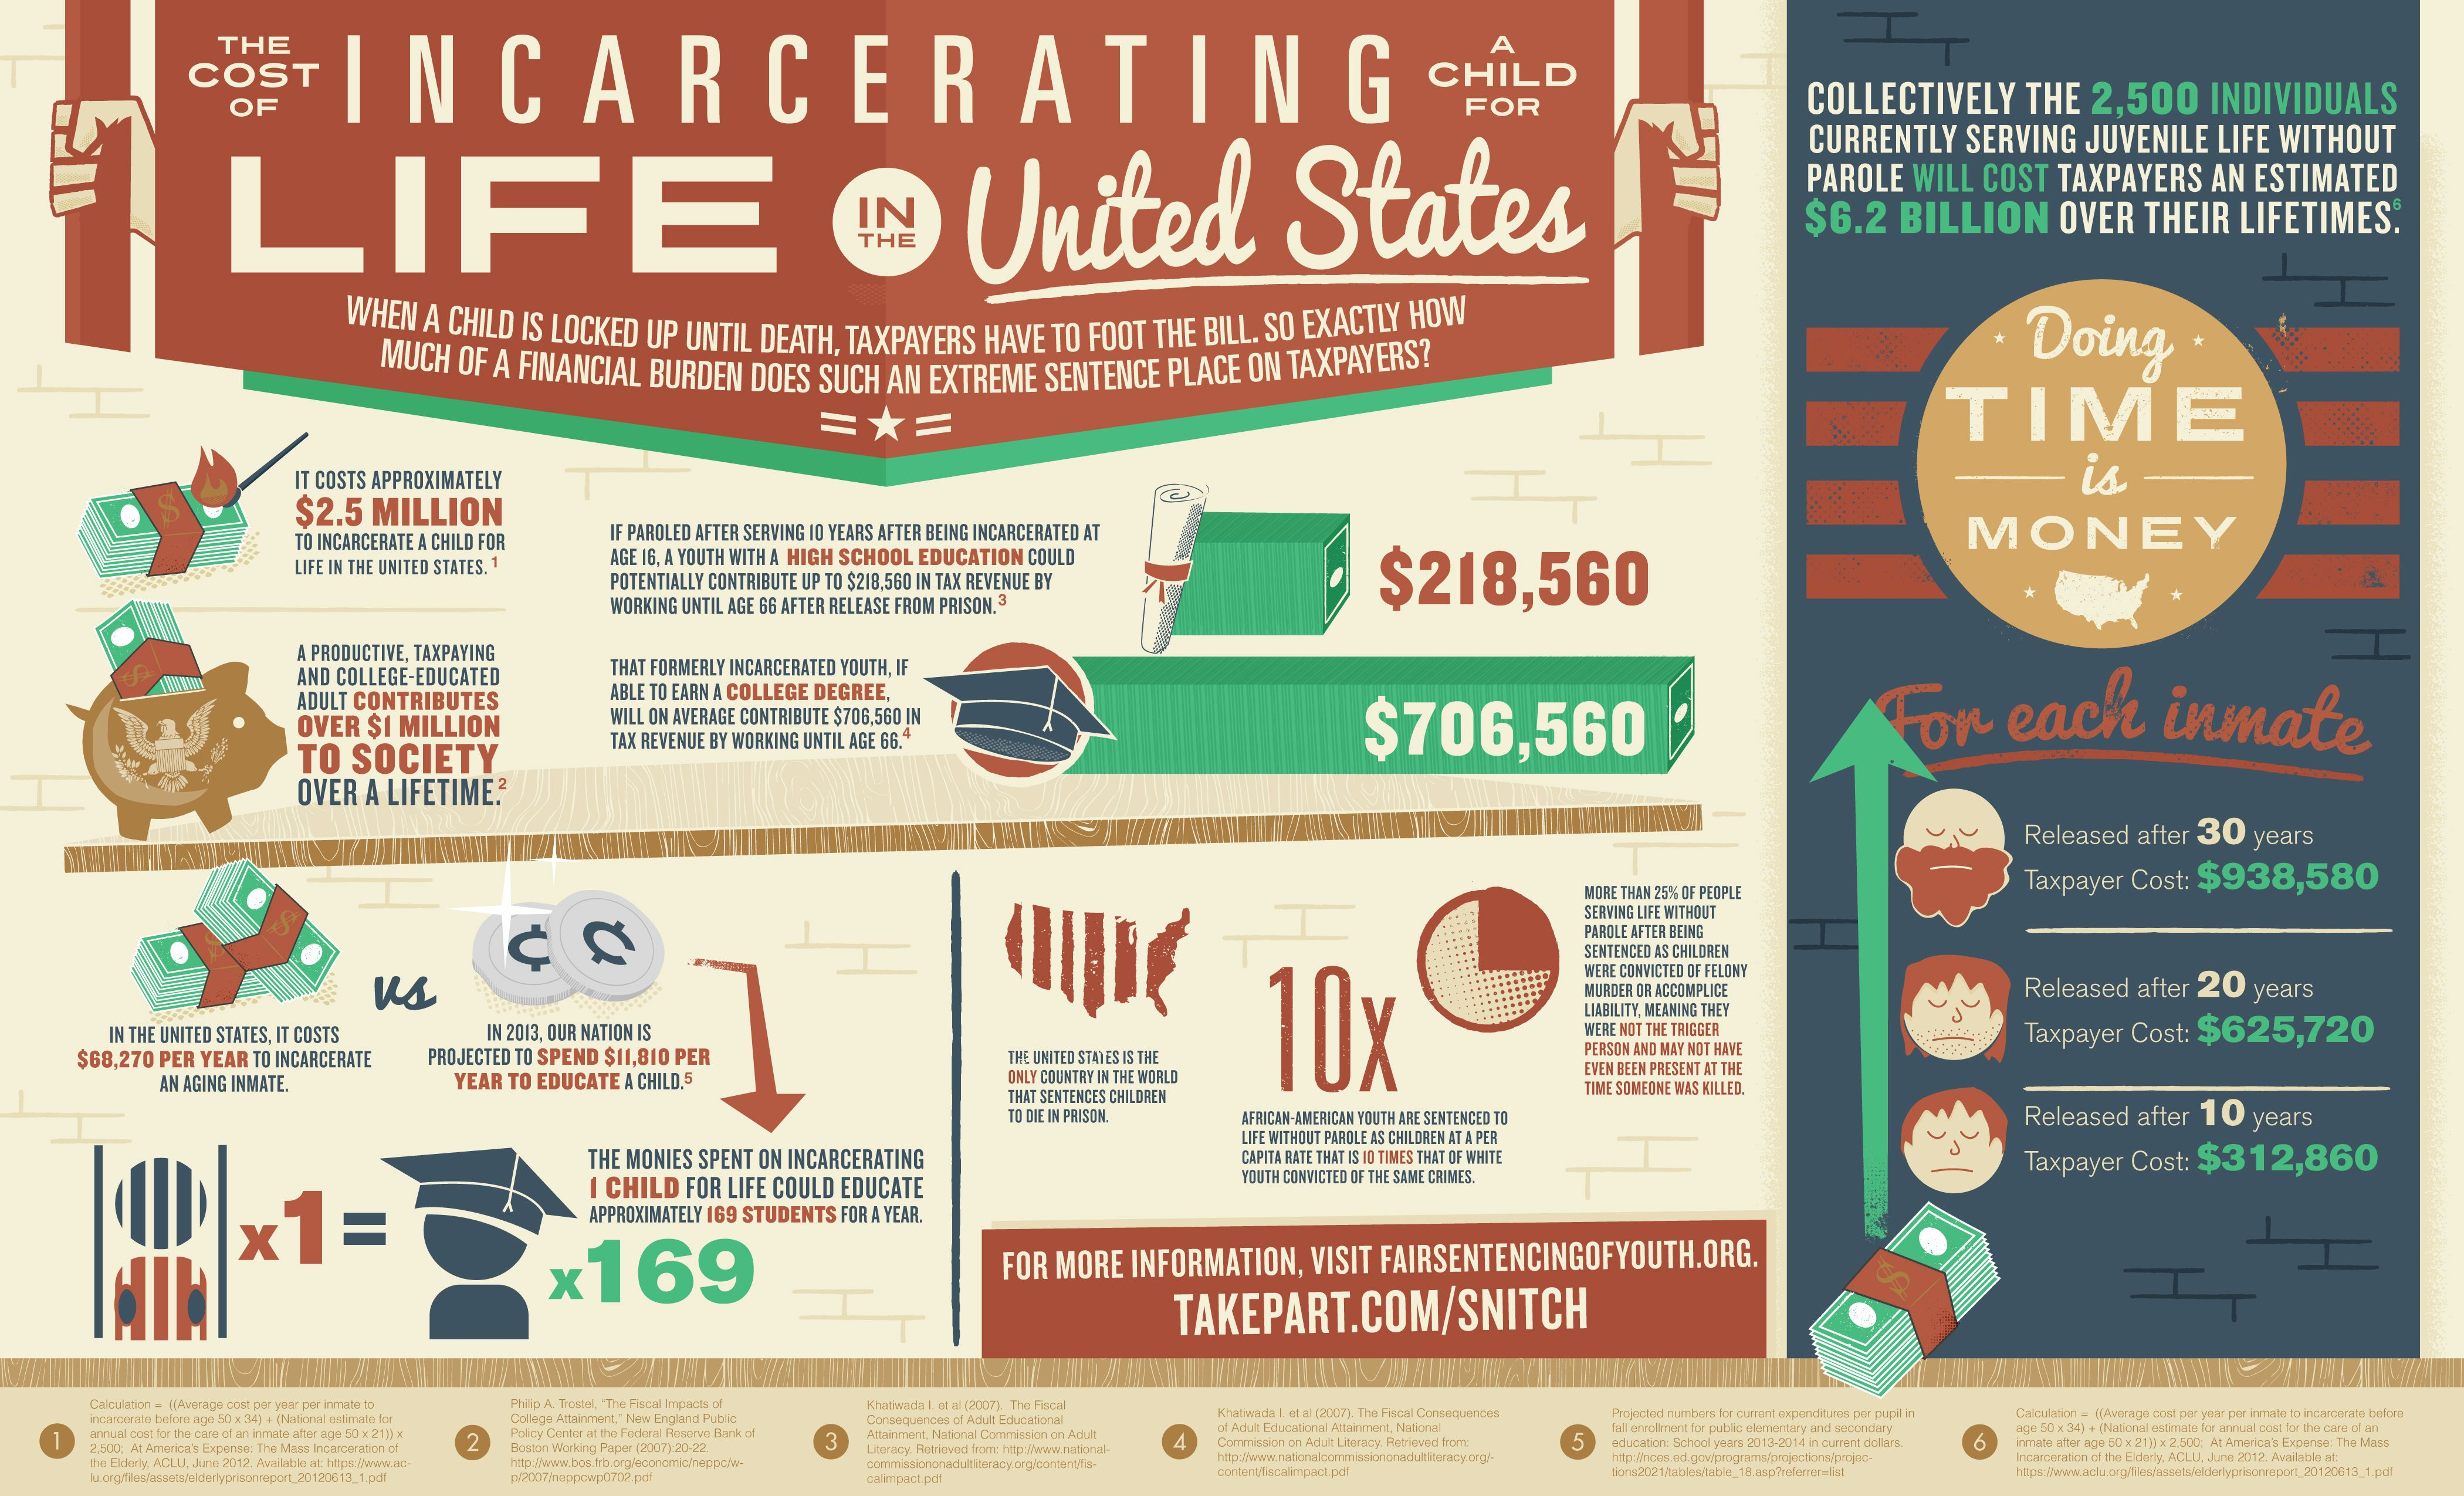 This on the cost of incarcerating children